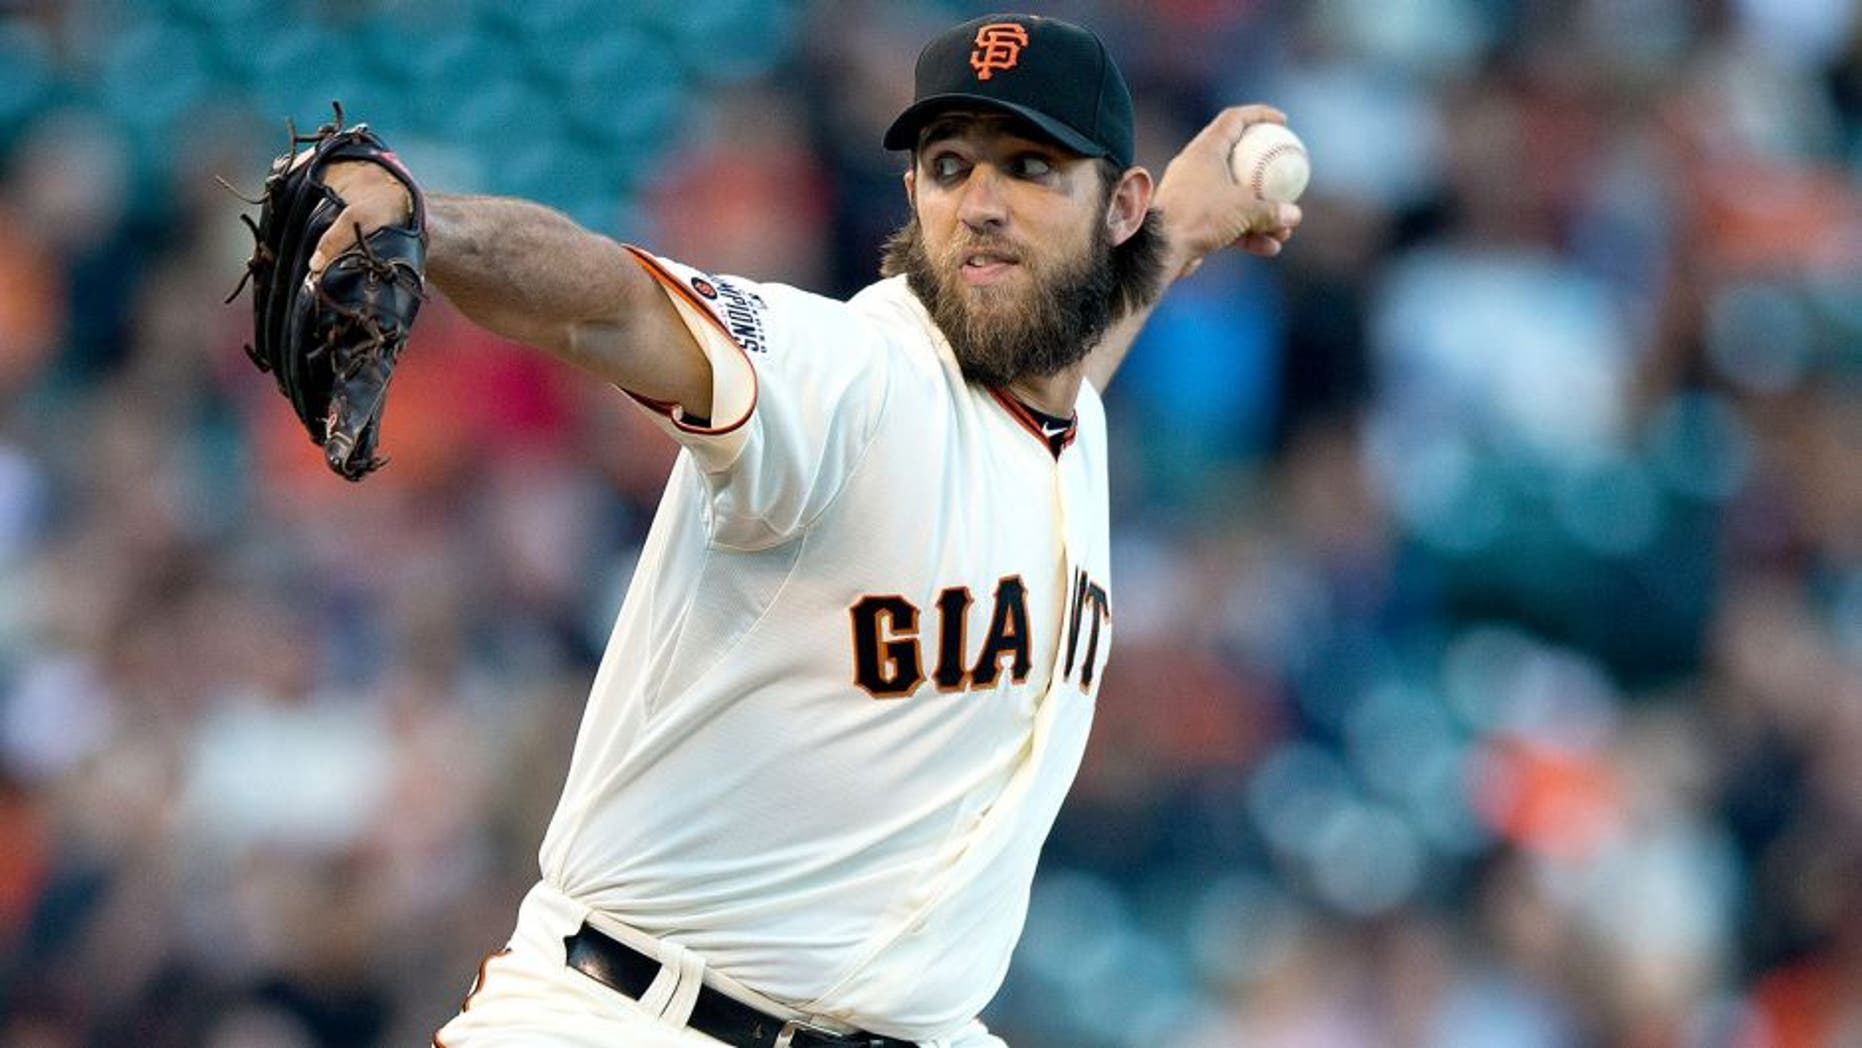 SAN FRANCISCO, CA - AUGUST 11: Madison Bumgarner #40 of the San Francisco Giants pitches against the Houston Astros during the first inning at AT&T Park on August 11, 2015 in San Francisco, California. (Photo by Jason O. Watson/Getty Images)